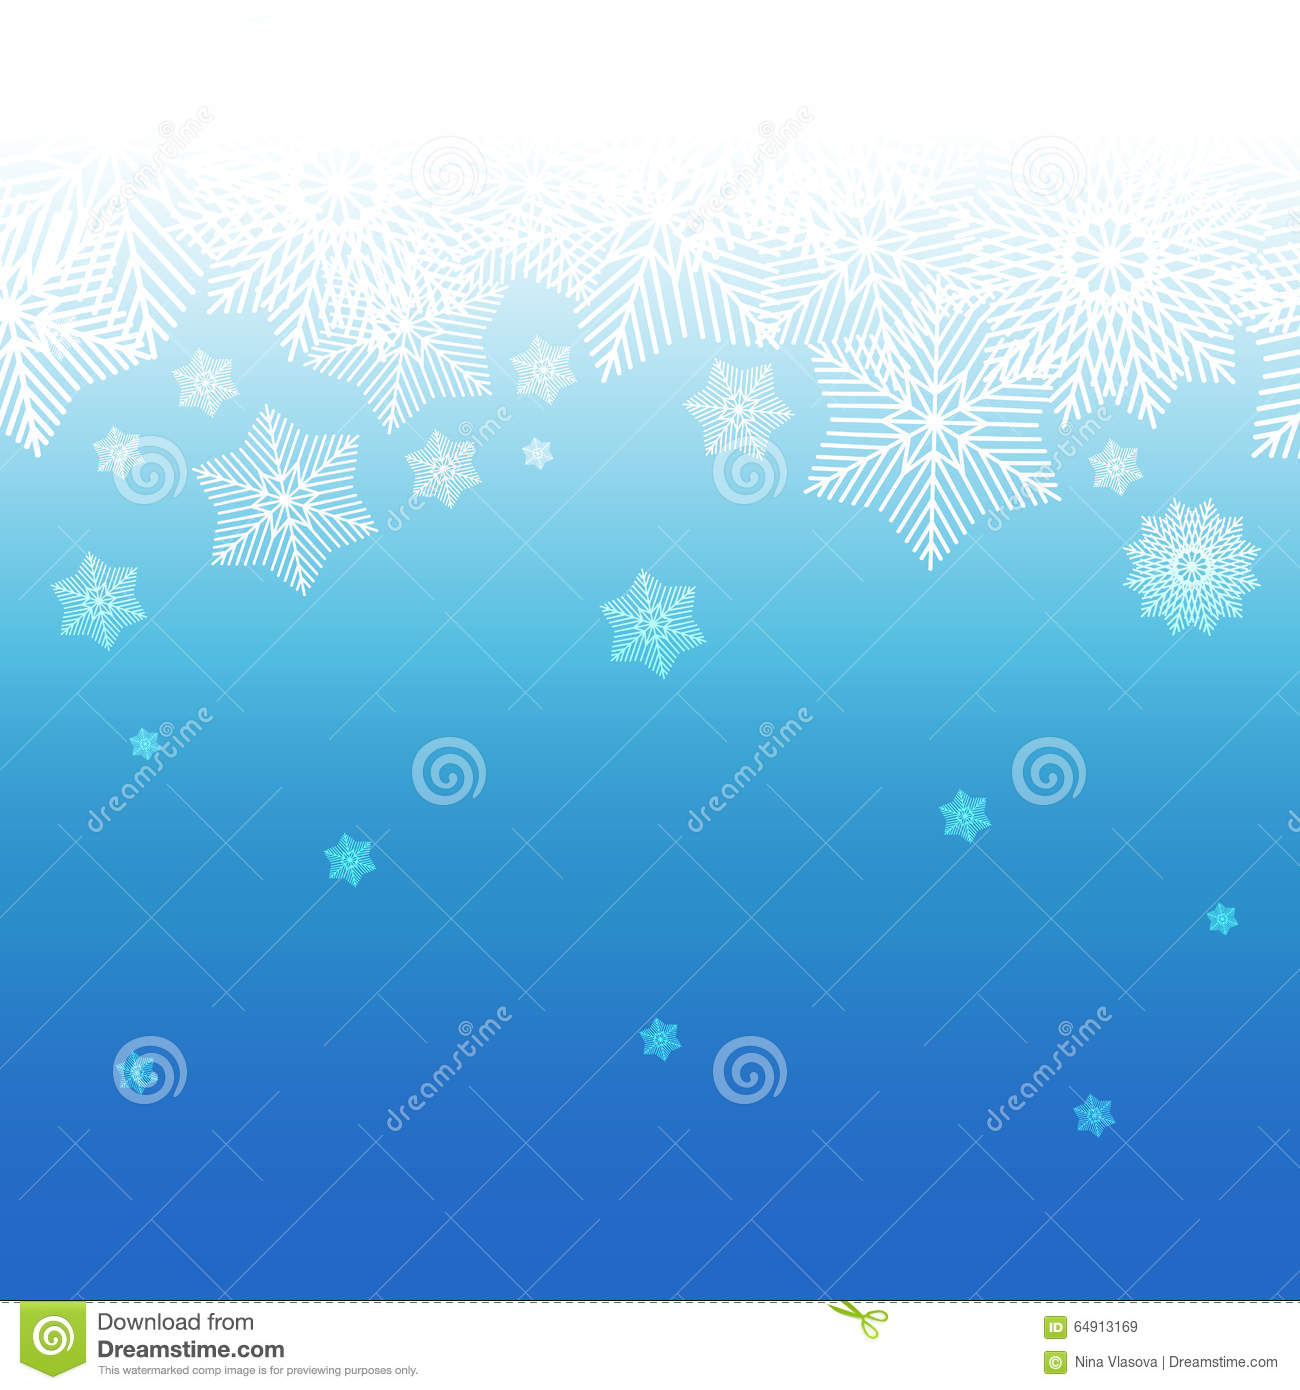 abstract decorative blue and white christmas background with